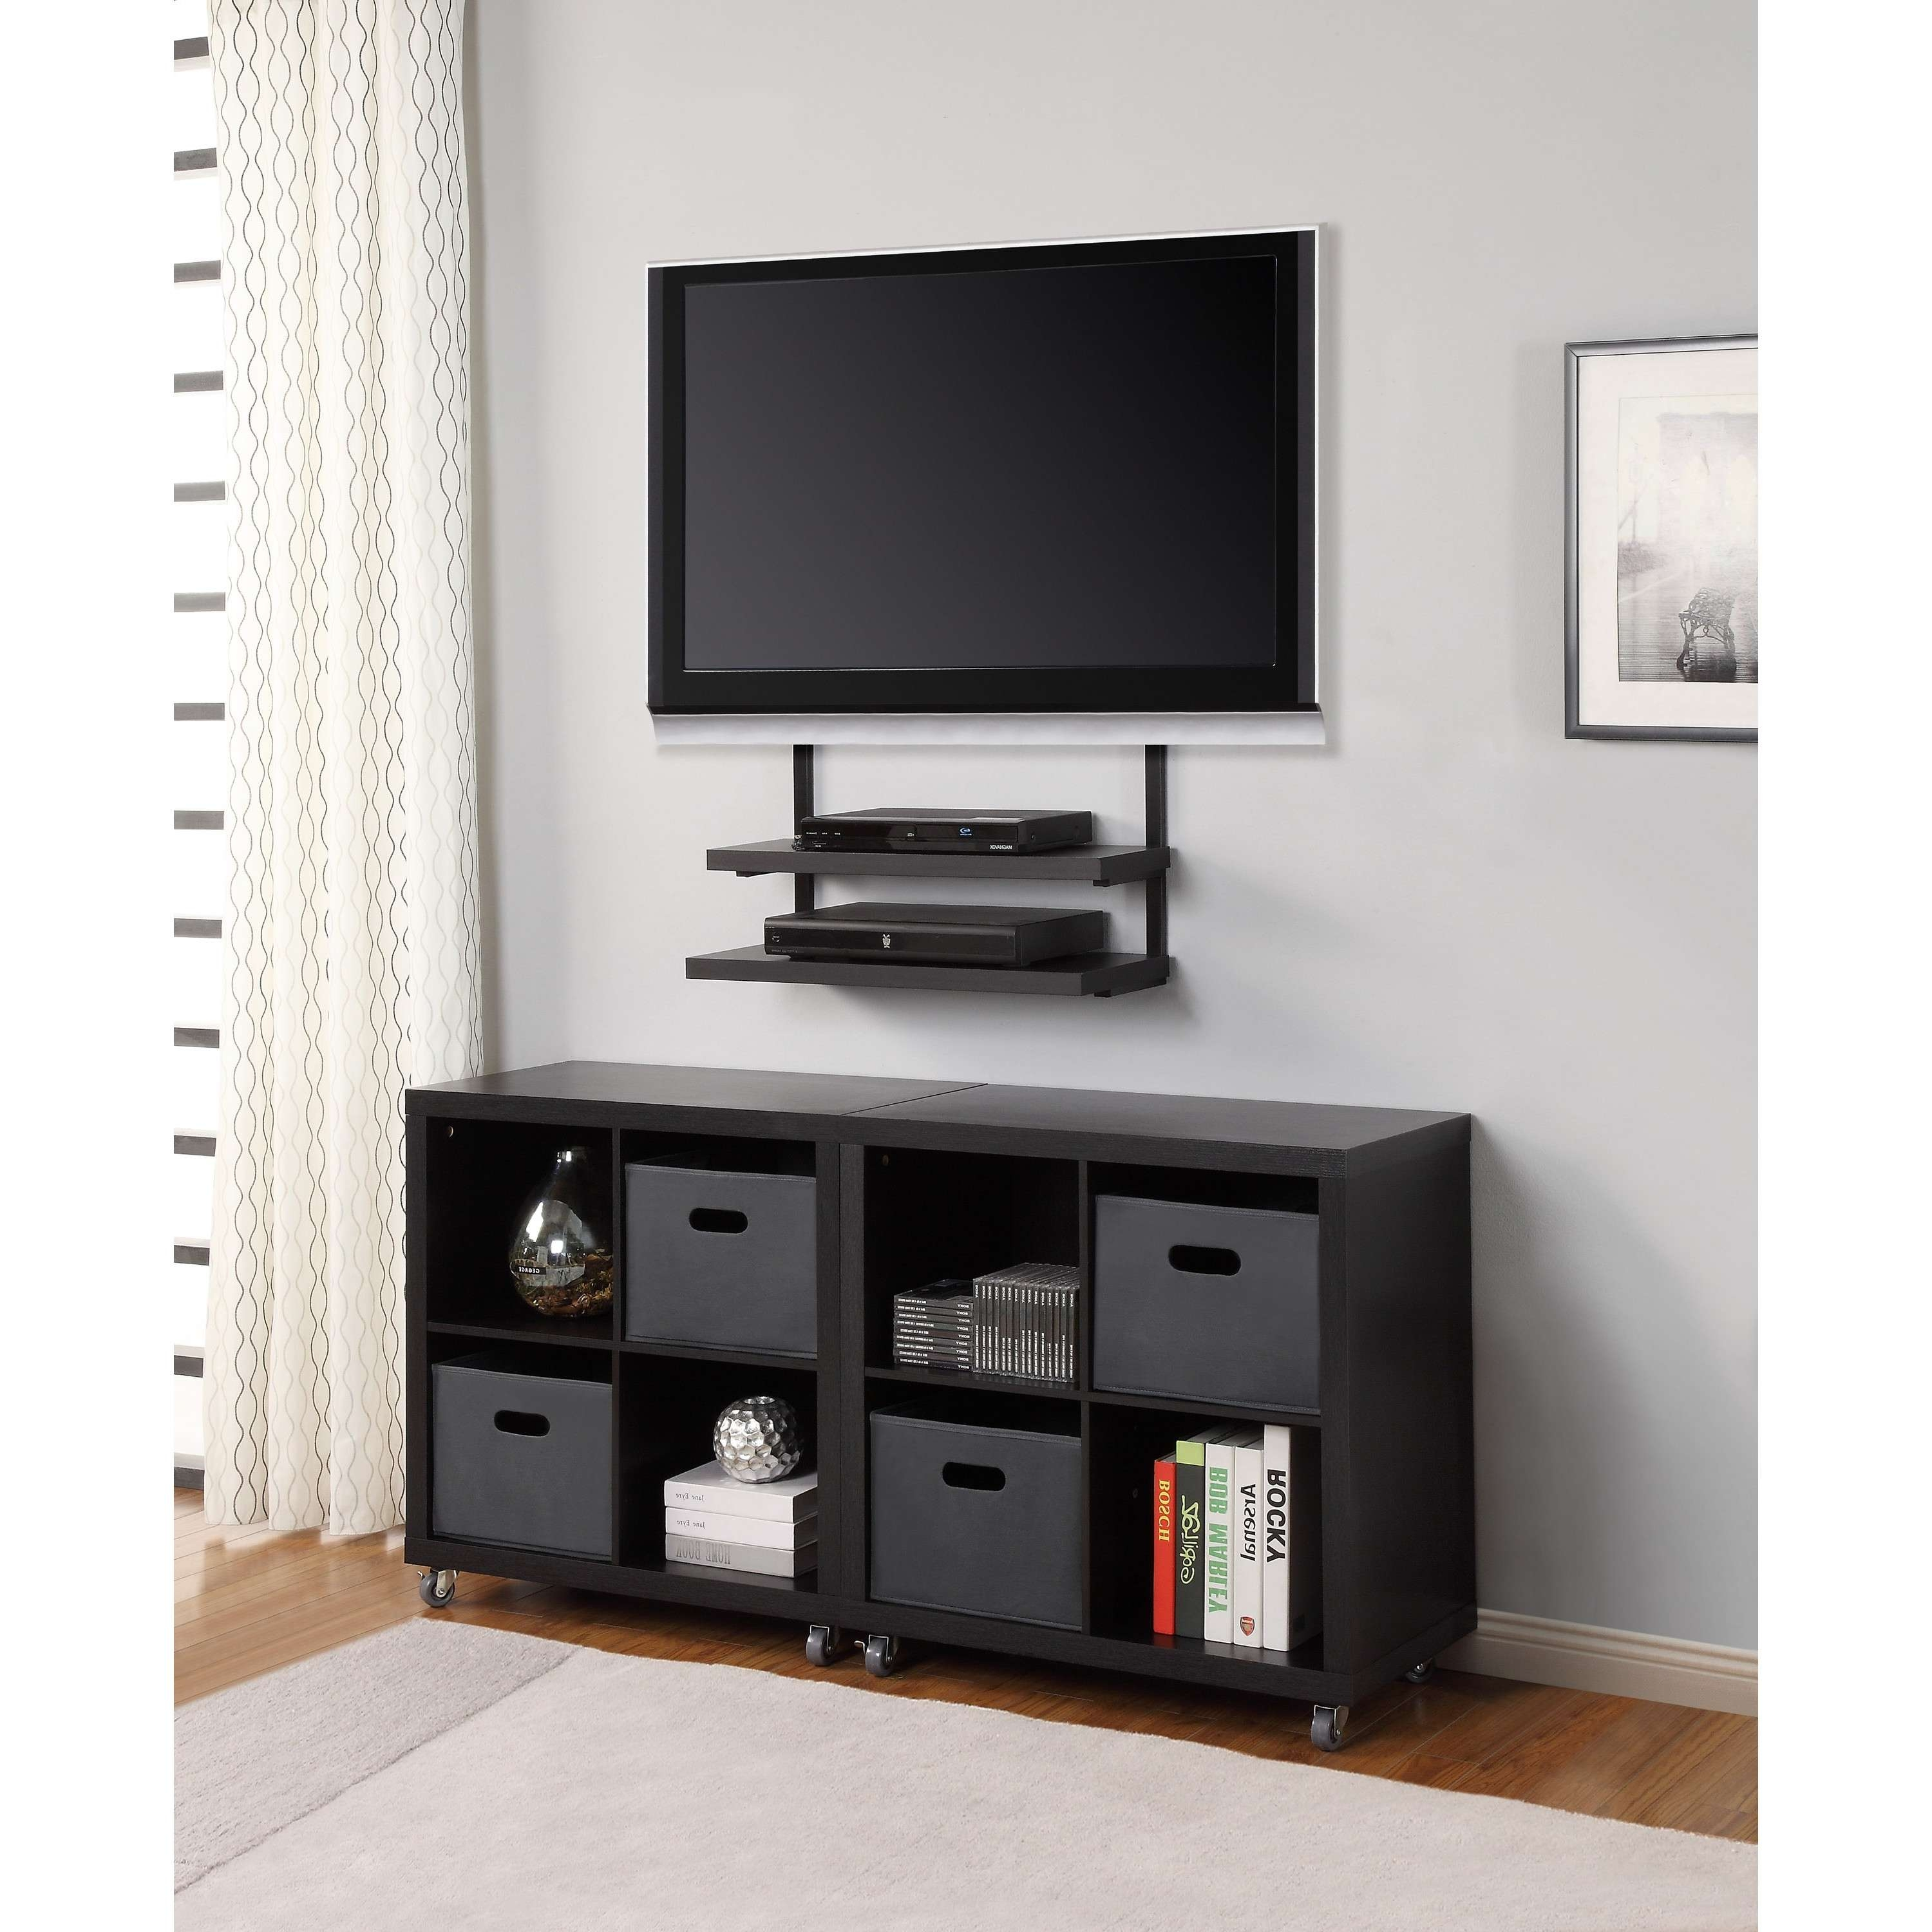 Uncategorized : Wood Tv Stand With Mount In Elegant Cosmopolitan Pertaining To Extra Long Tv Stands (View 9 of 20)